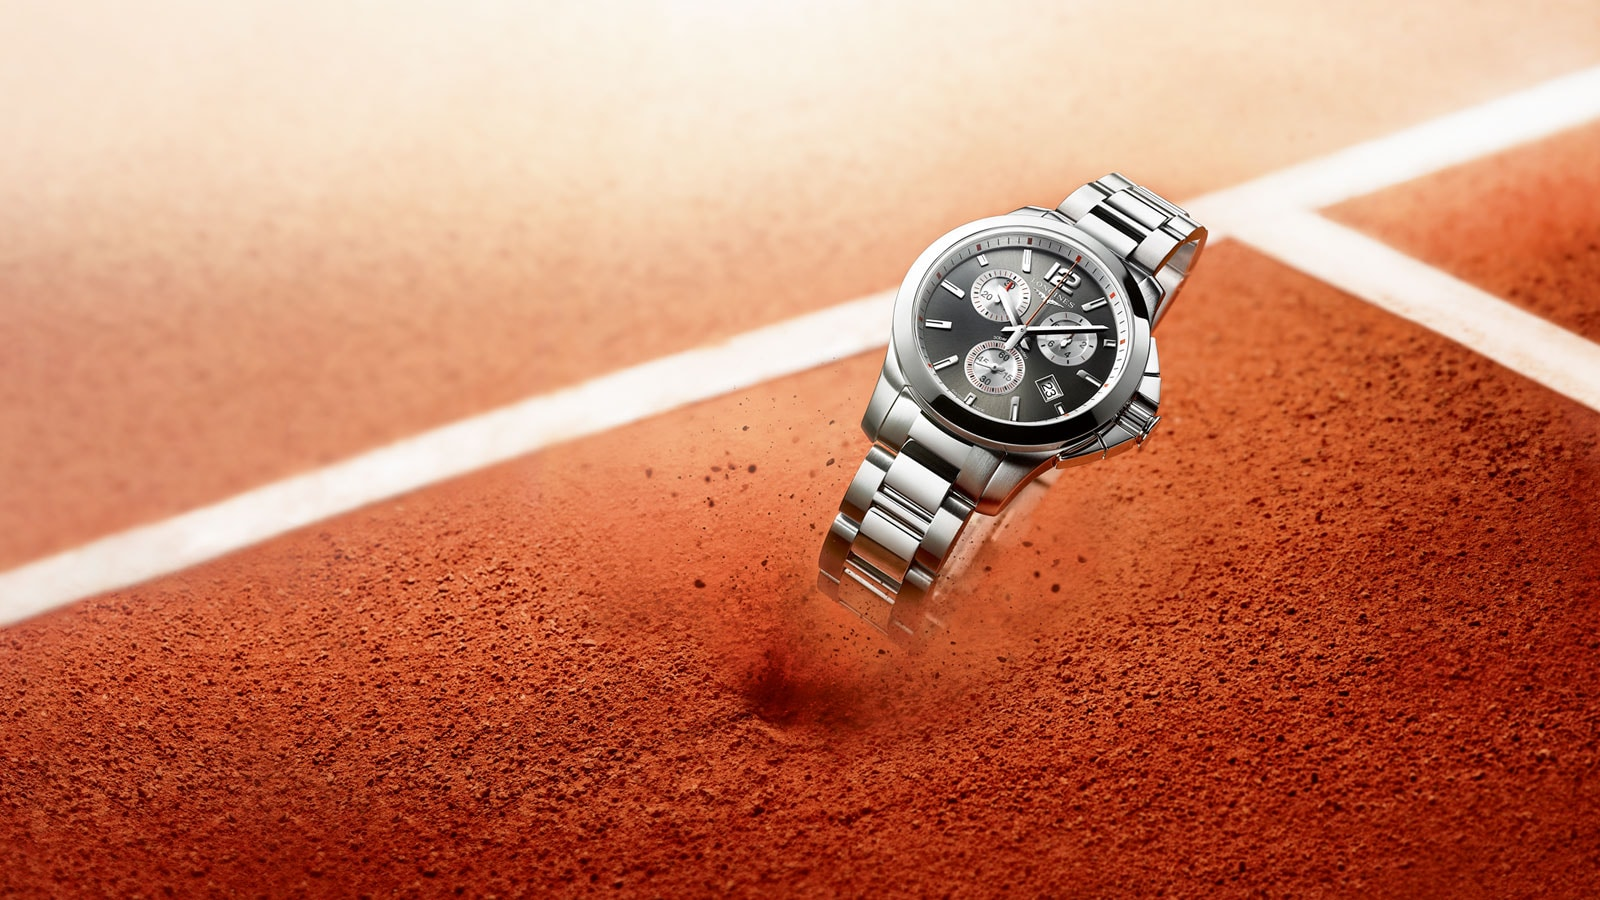 LONGINES, OFFICIAL PARTNER AND TIMEKEEPER OF THE 2017 FRENCH OPEN